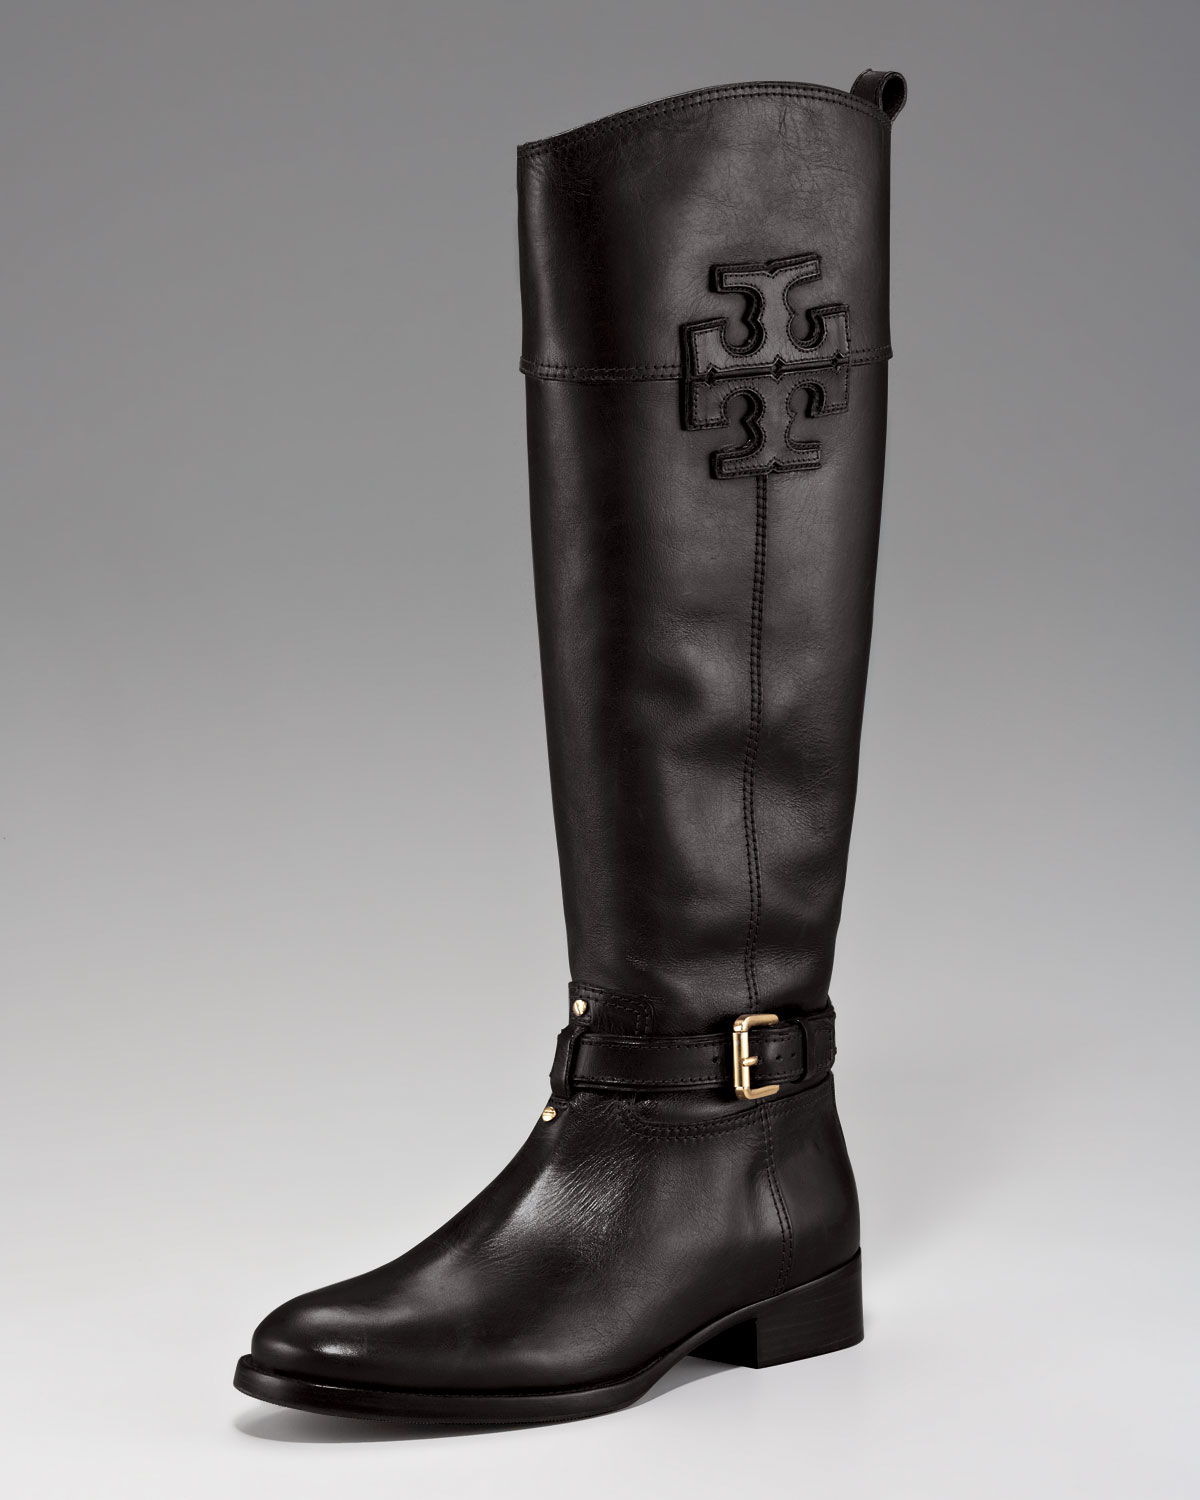 buy cheap pay with paypal Tory Burch Patent Leather Knee-High Boots cheap sale wide range of zgS77